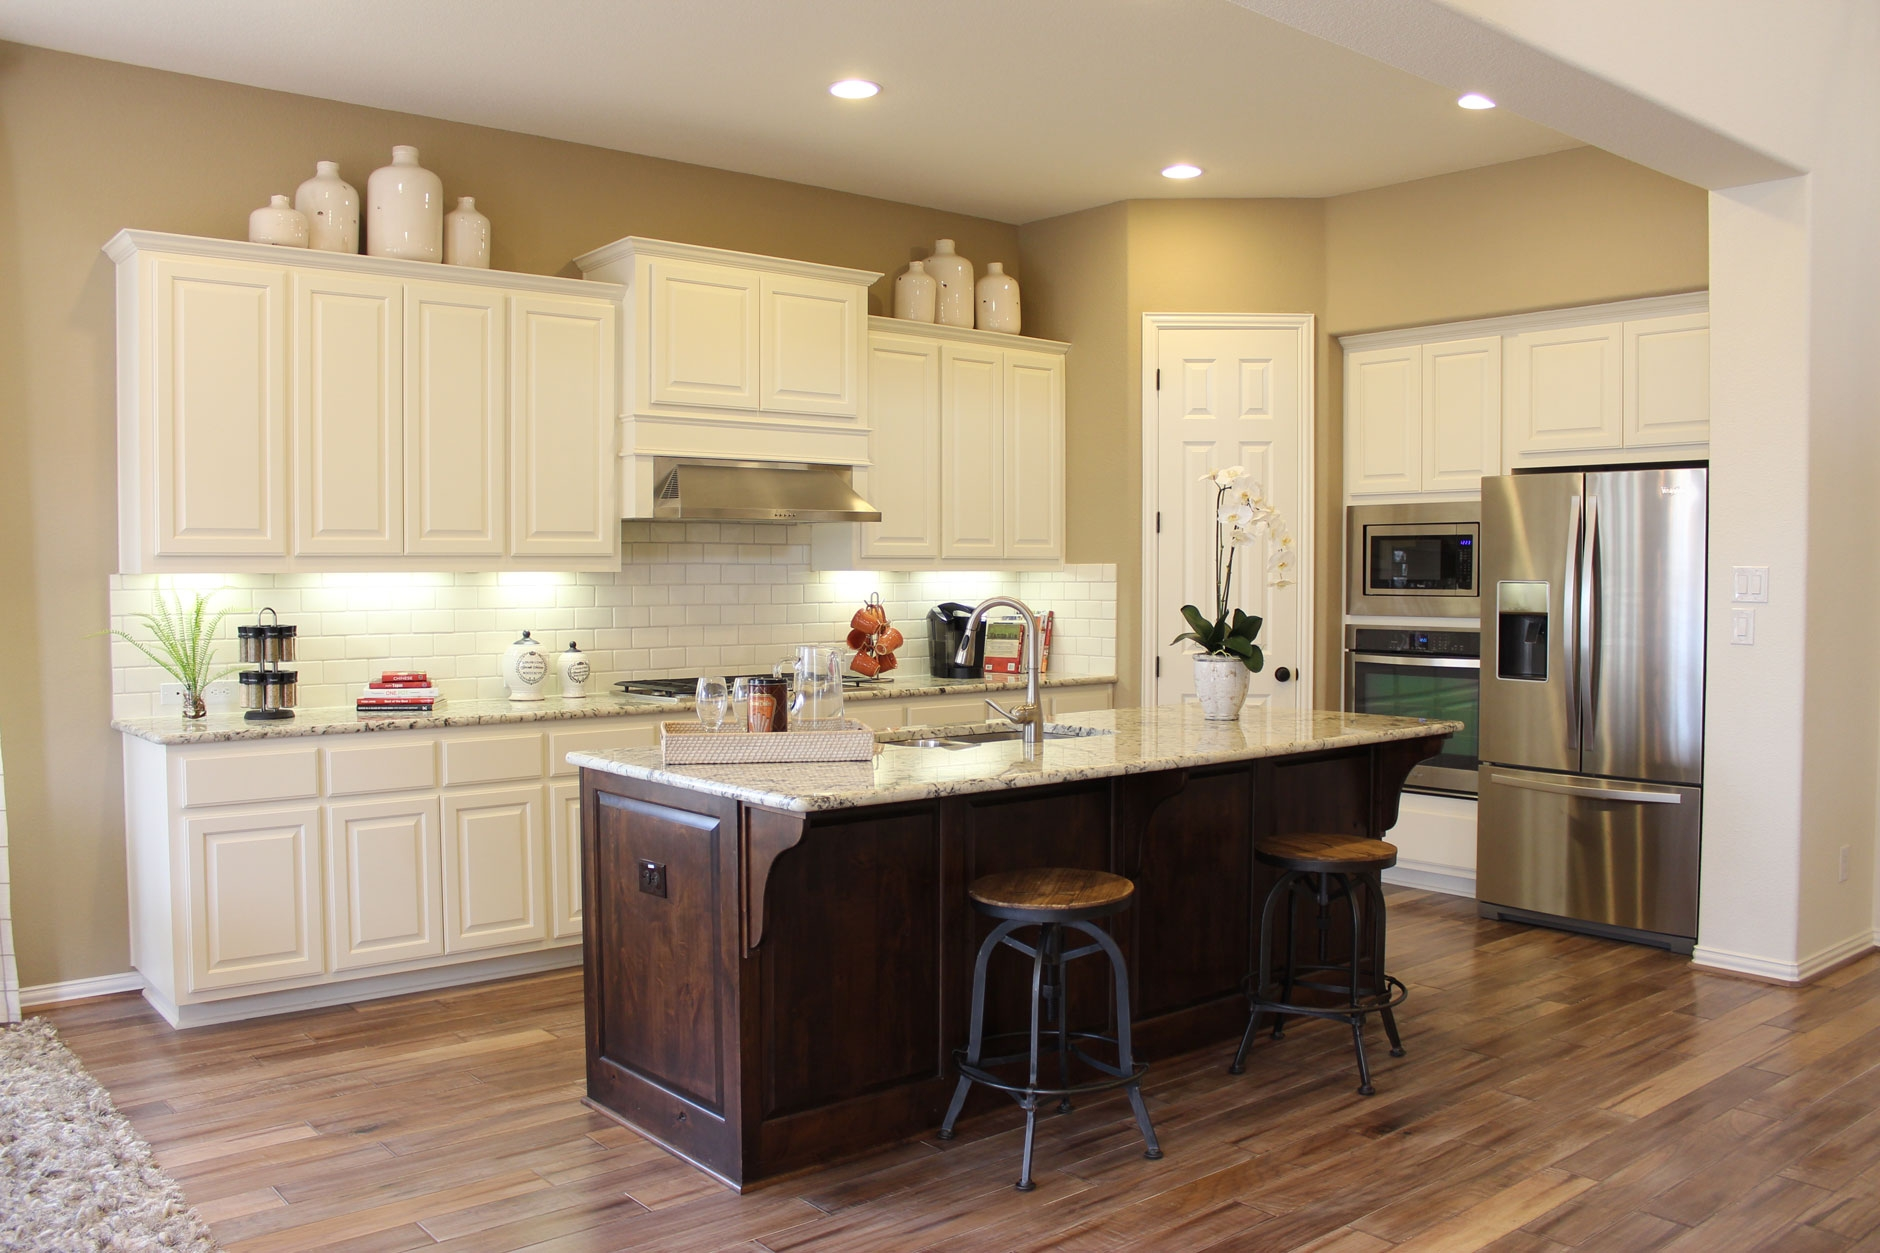 Permalink to Select Kitchen Cabinets Ltd